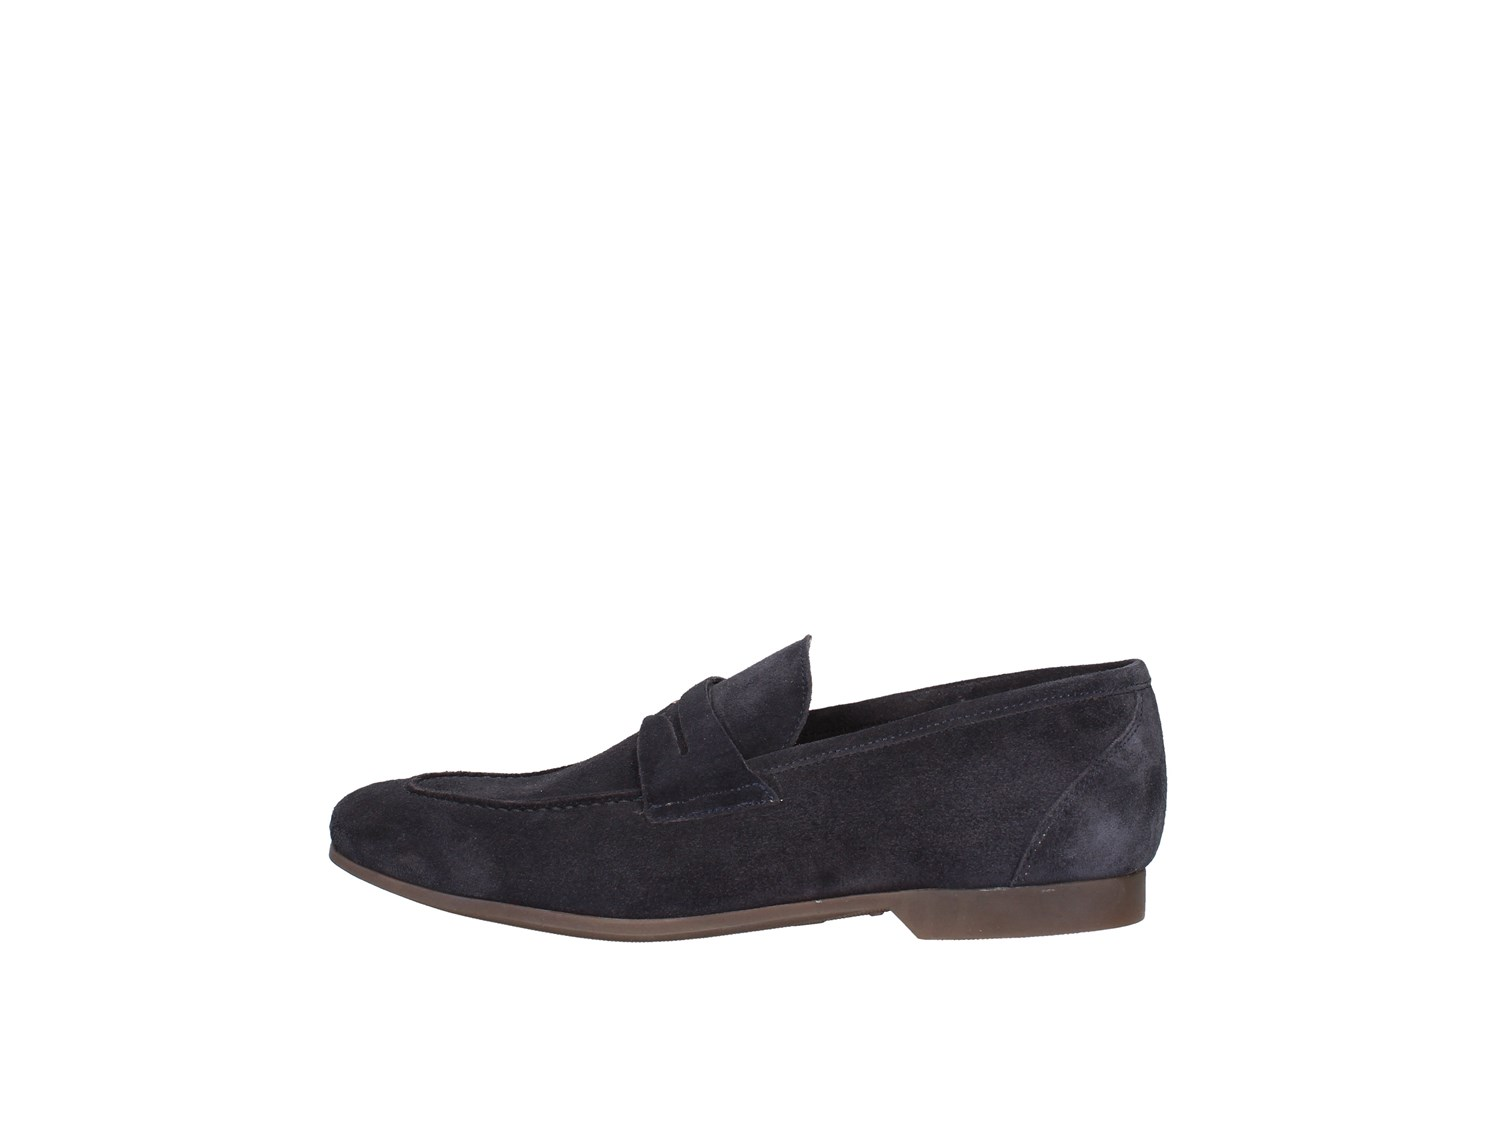 J.b.willis Car01 Blue Shoes Man Moccasin